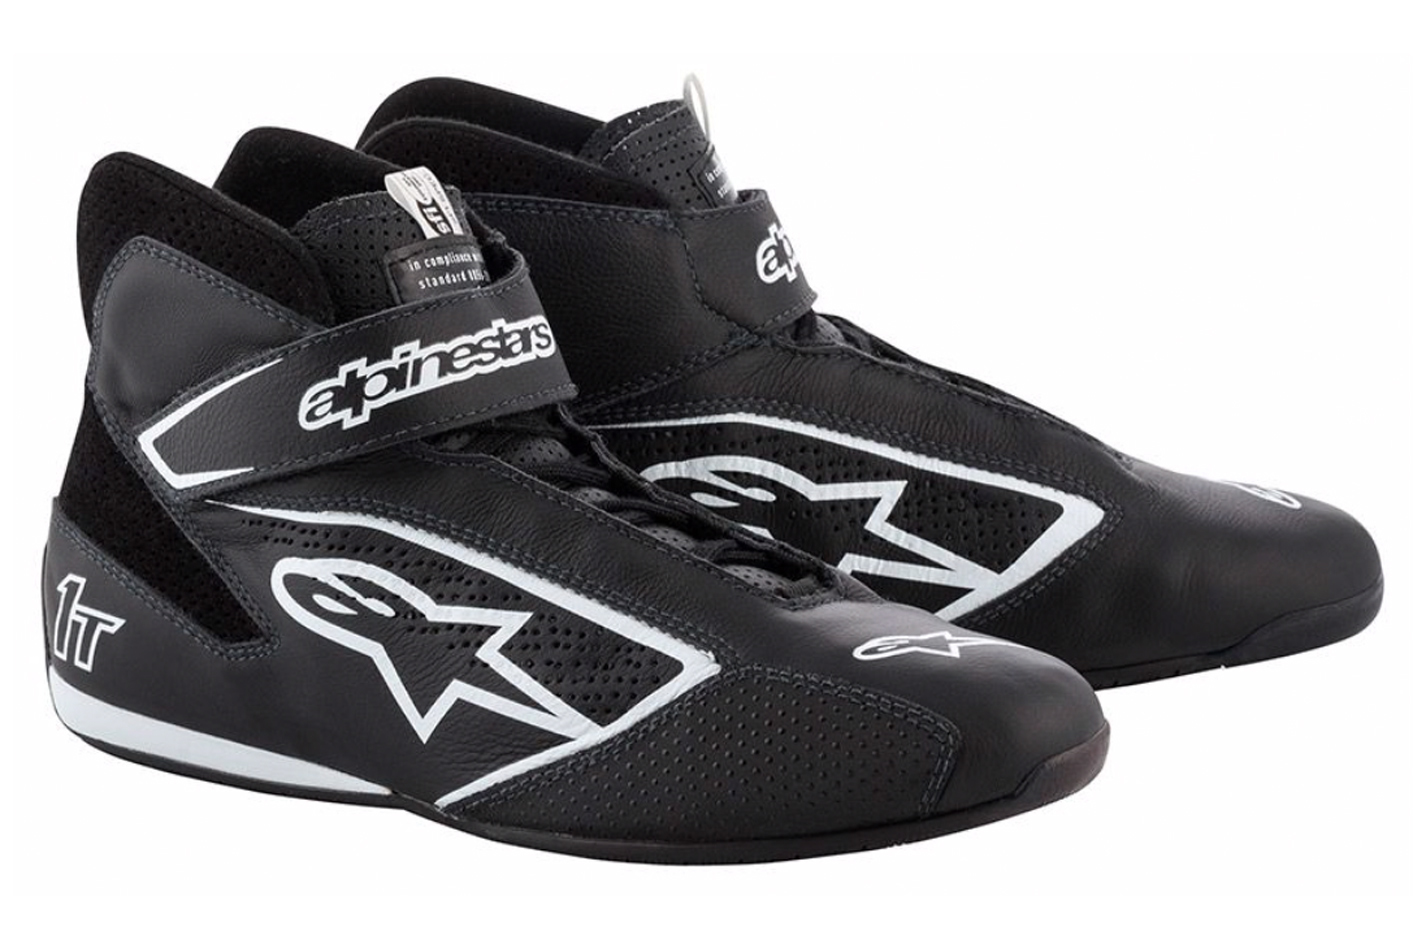 Alpinestars USA 2710119-12B-11 Shoe, Tech 1-T, Driving, Mid-Top, SFI 3.3, FIA Approved, Leather Outer, Nomex Inner, Black, Size 11, Pair